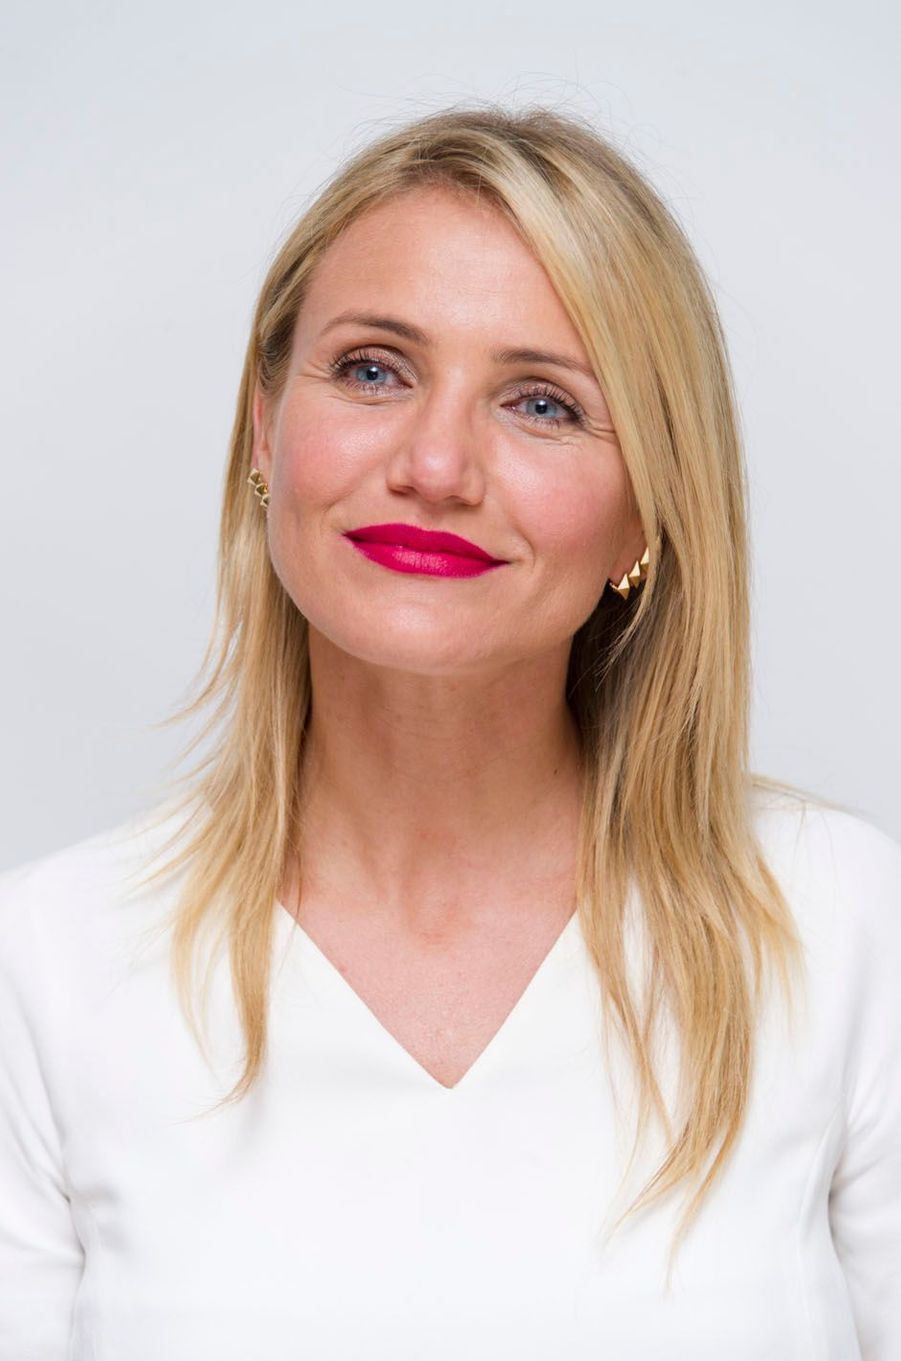 Cameron Diaz 10 avril 2014 à Beverly Hills.